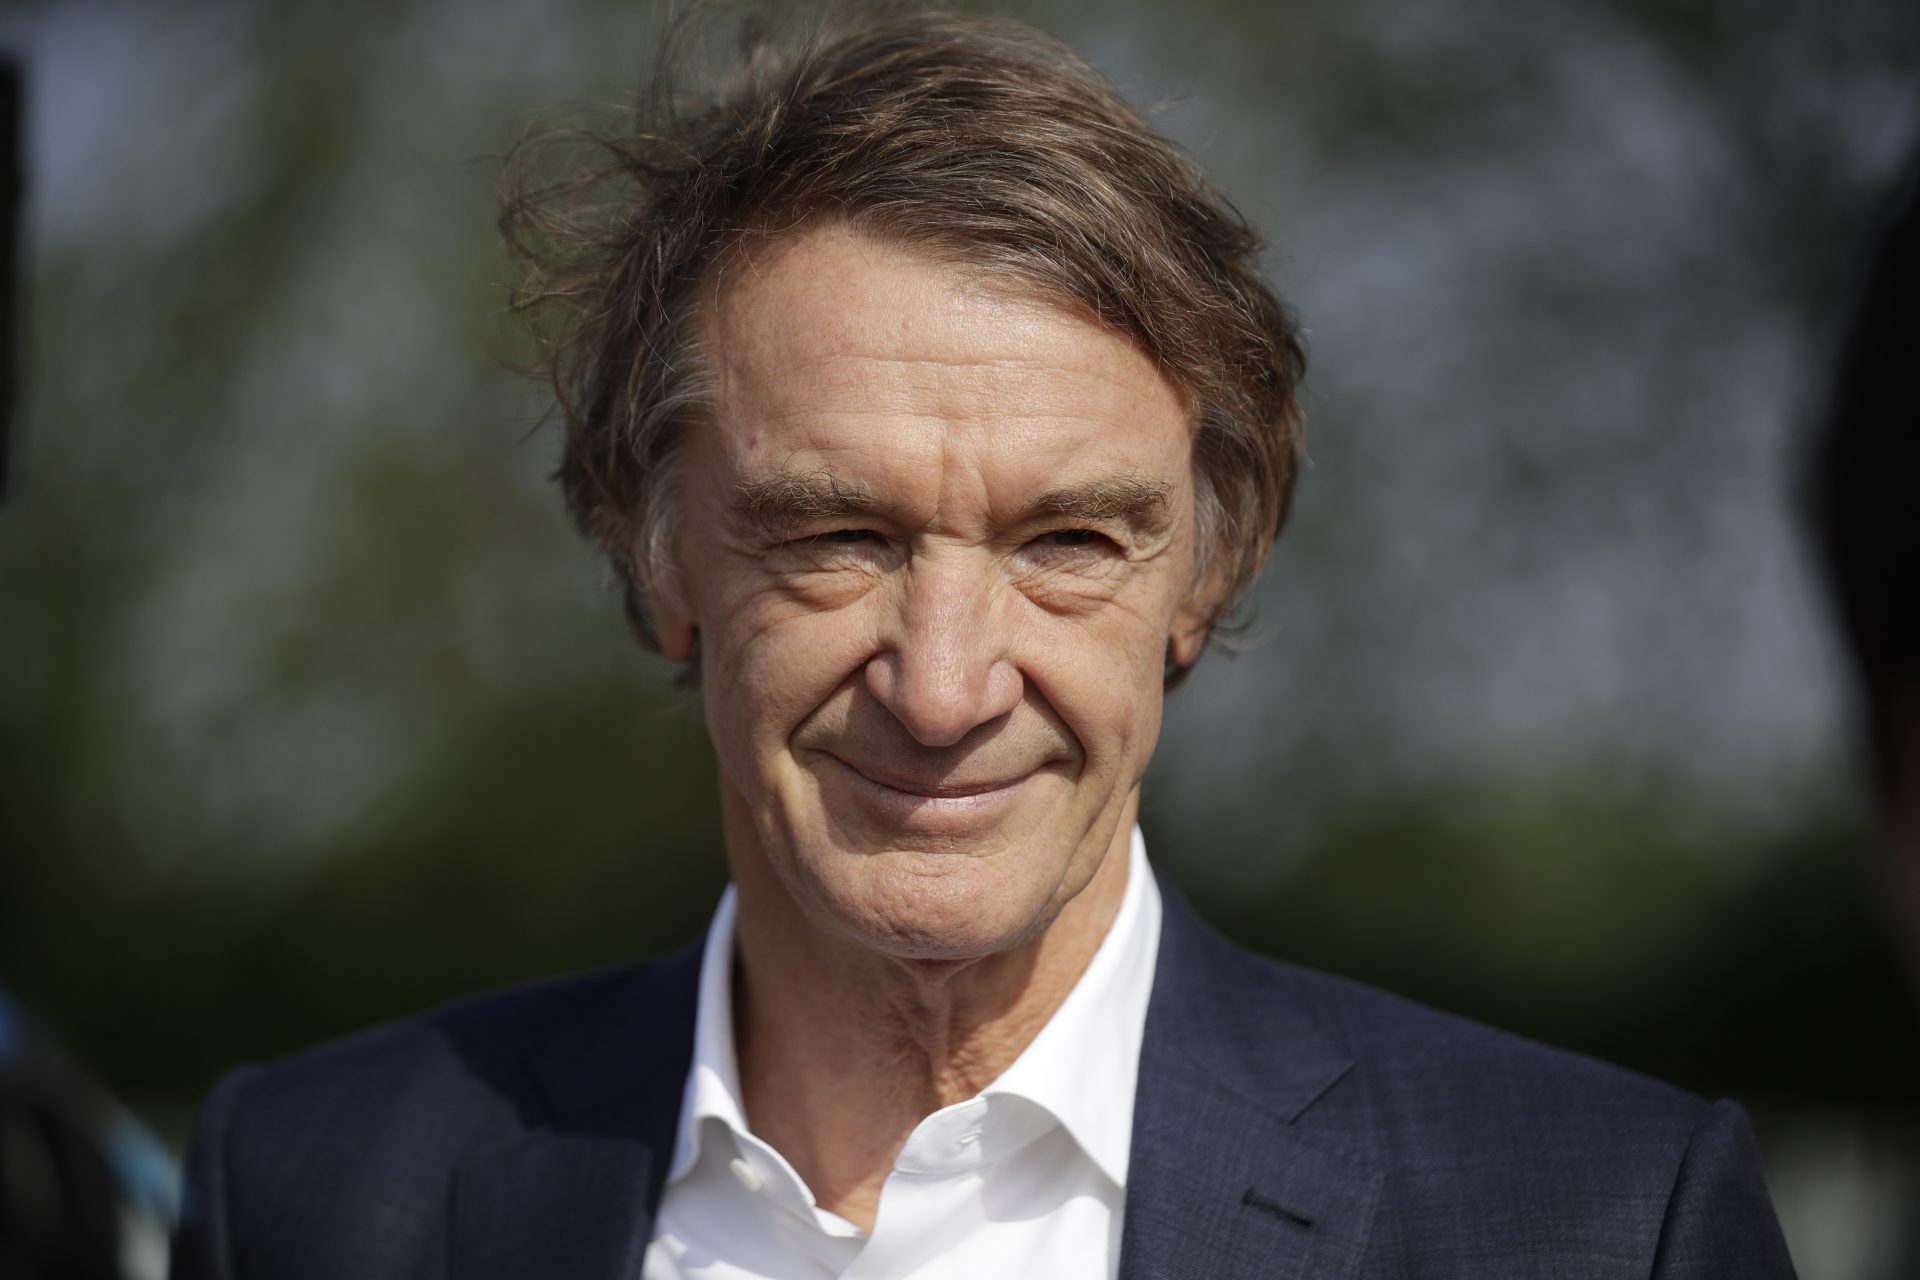 "Jim Ratcliffe, the founder of the INEOS Chemicals company, said in 2013 that the only way to save some European chemical plants was ""if we can bring some of the U.S. economics across to Europe to feed these big assets that we've got over here,"""